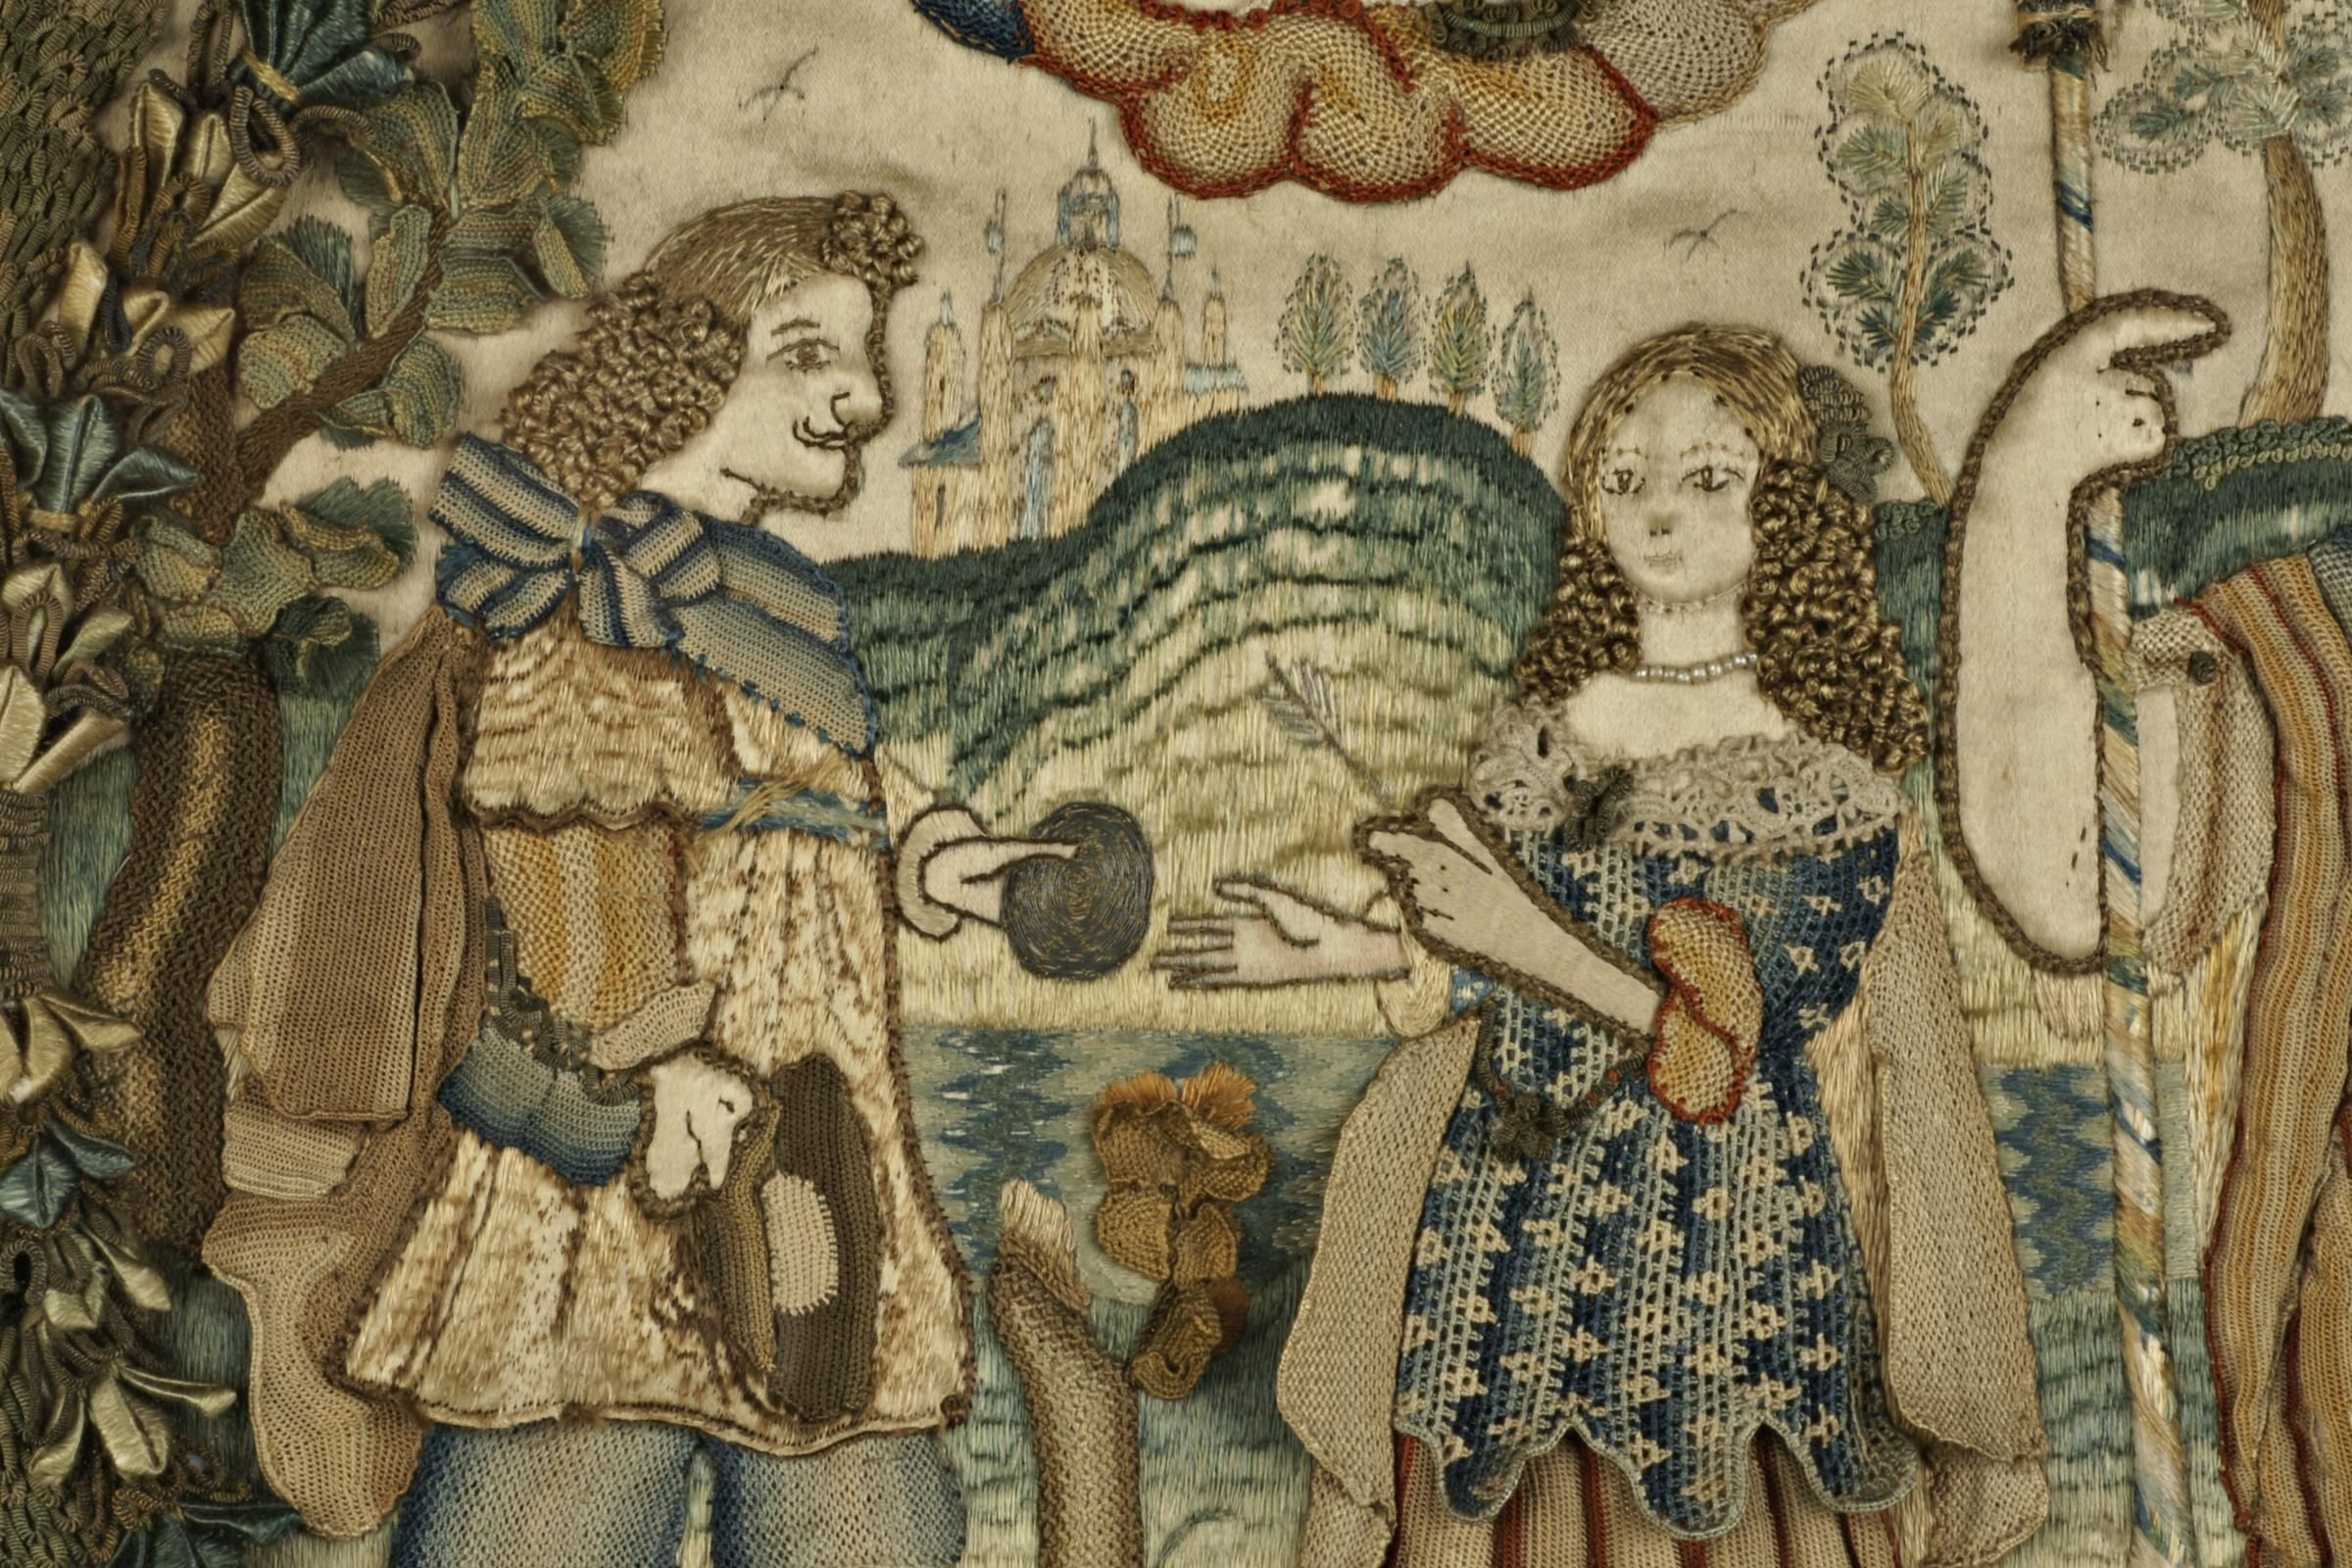 Seventeenth century embroidery from the feller and ashmolean